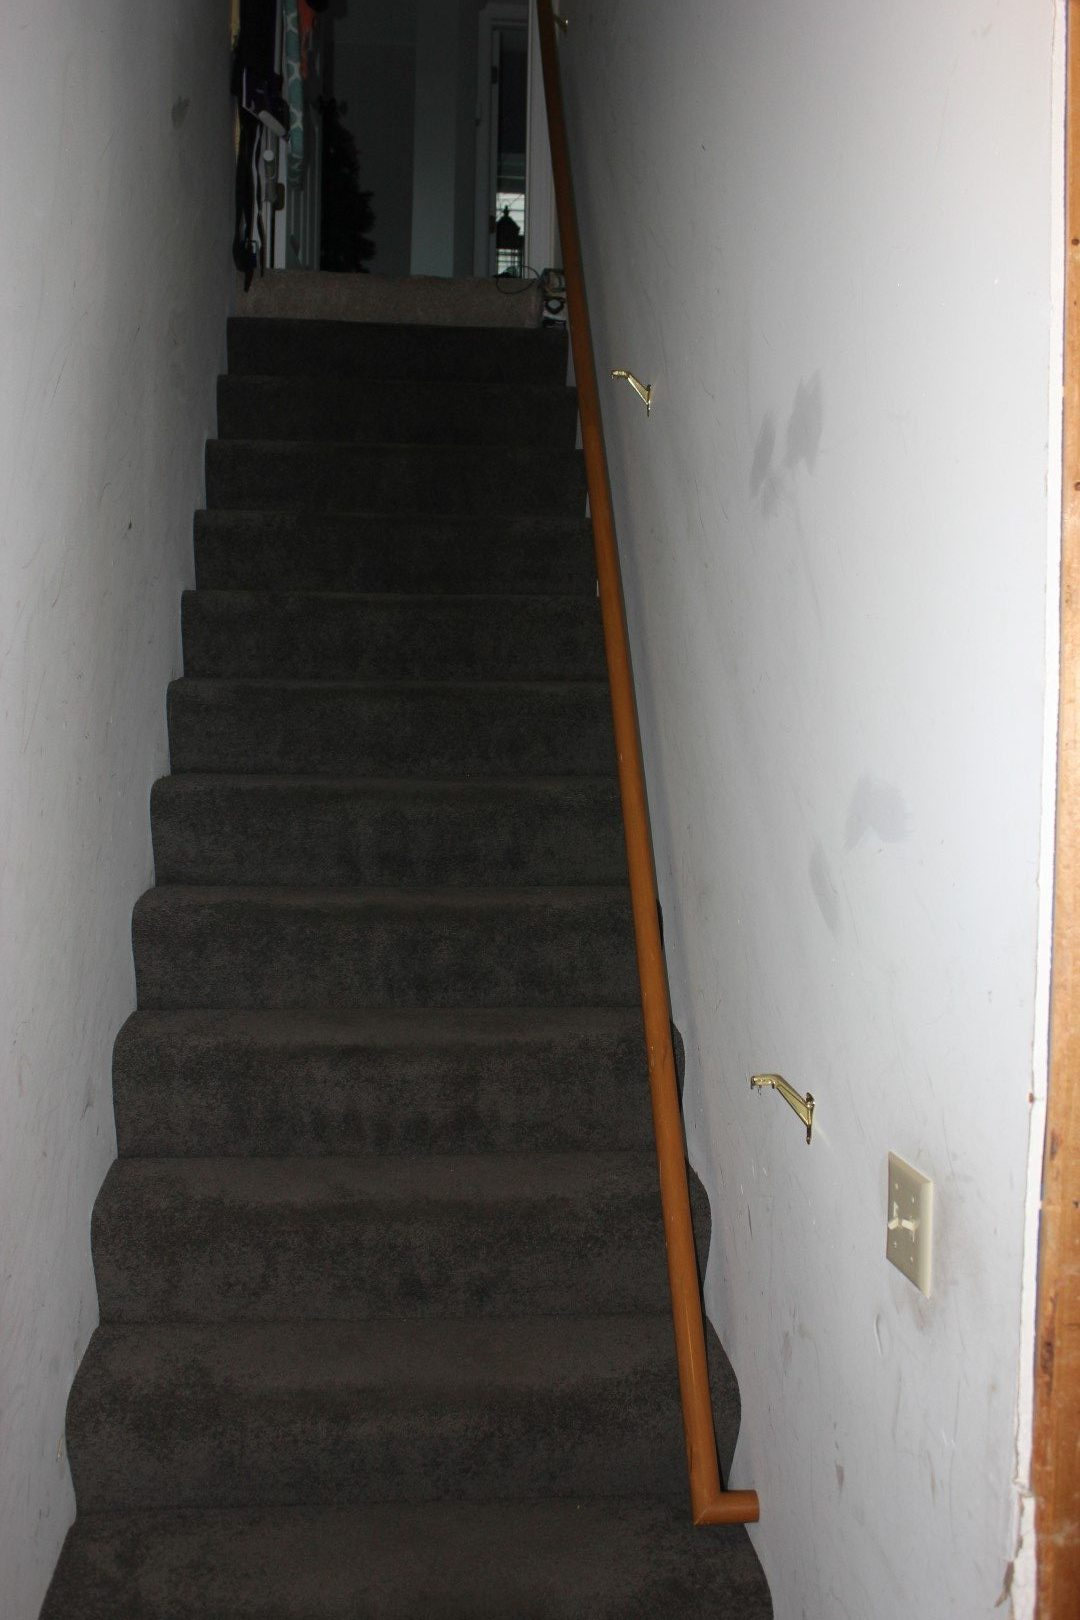 In The Past, Anything To Do With A Stairway Could Never Be A Required  Repair. Missing Stairway? Missing Handrail? Missing Guardrail?